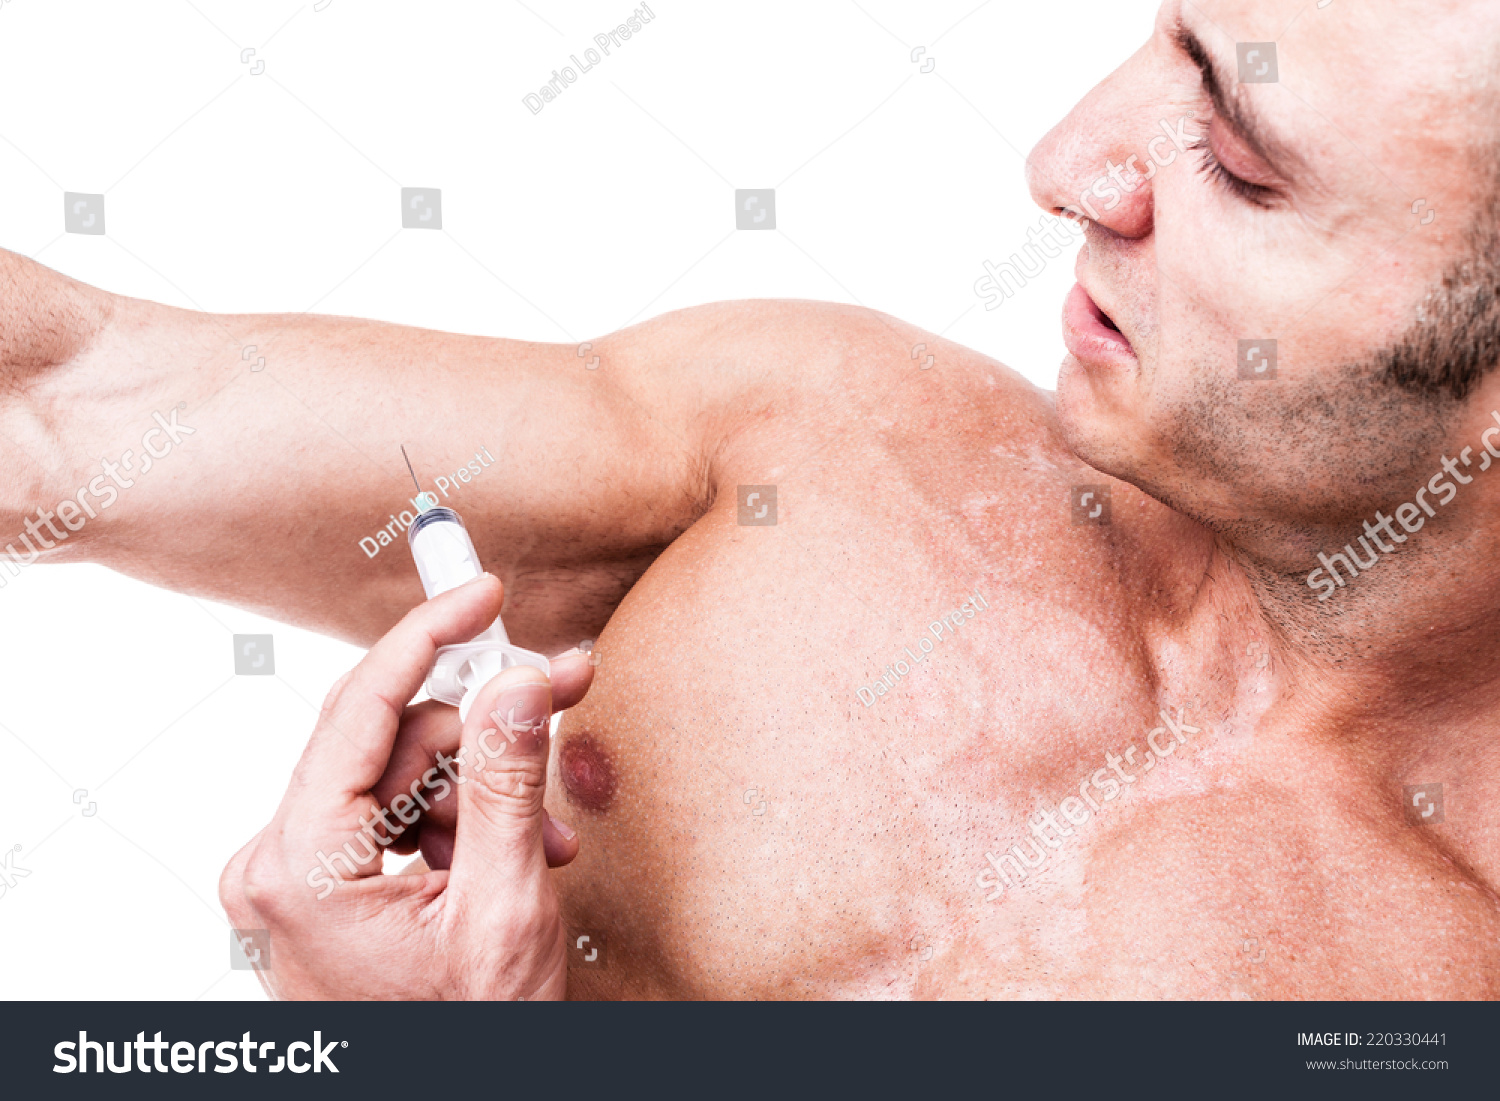 A Muscular Man Giving Himself A Steroid Injection In His